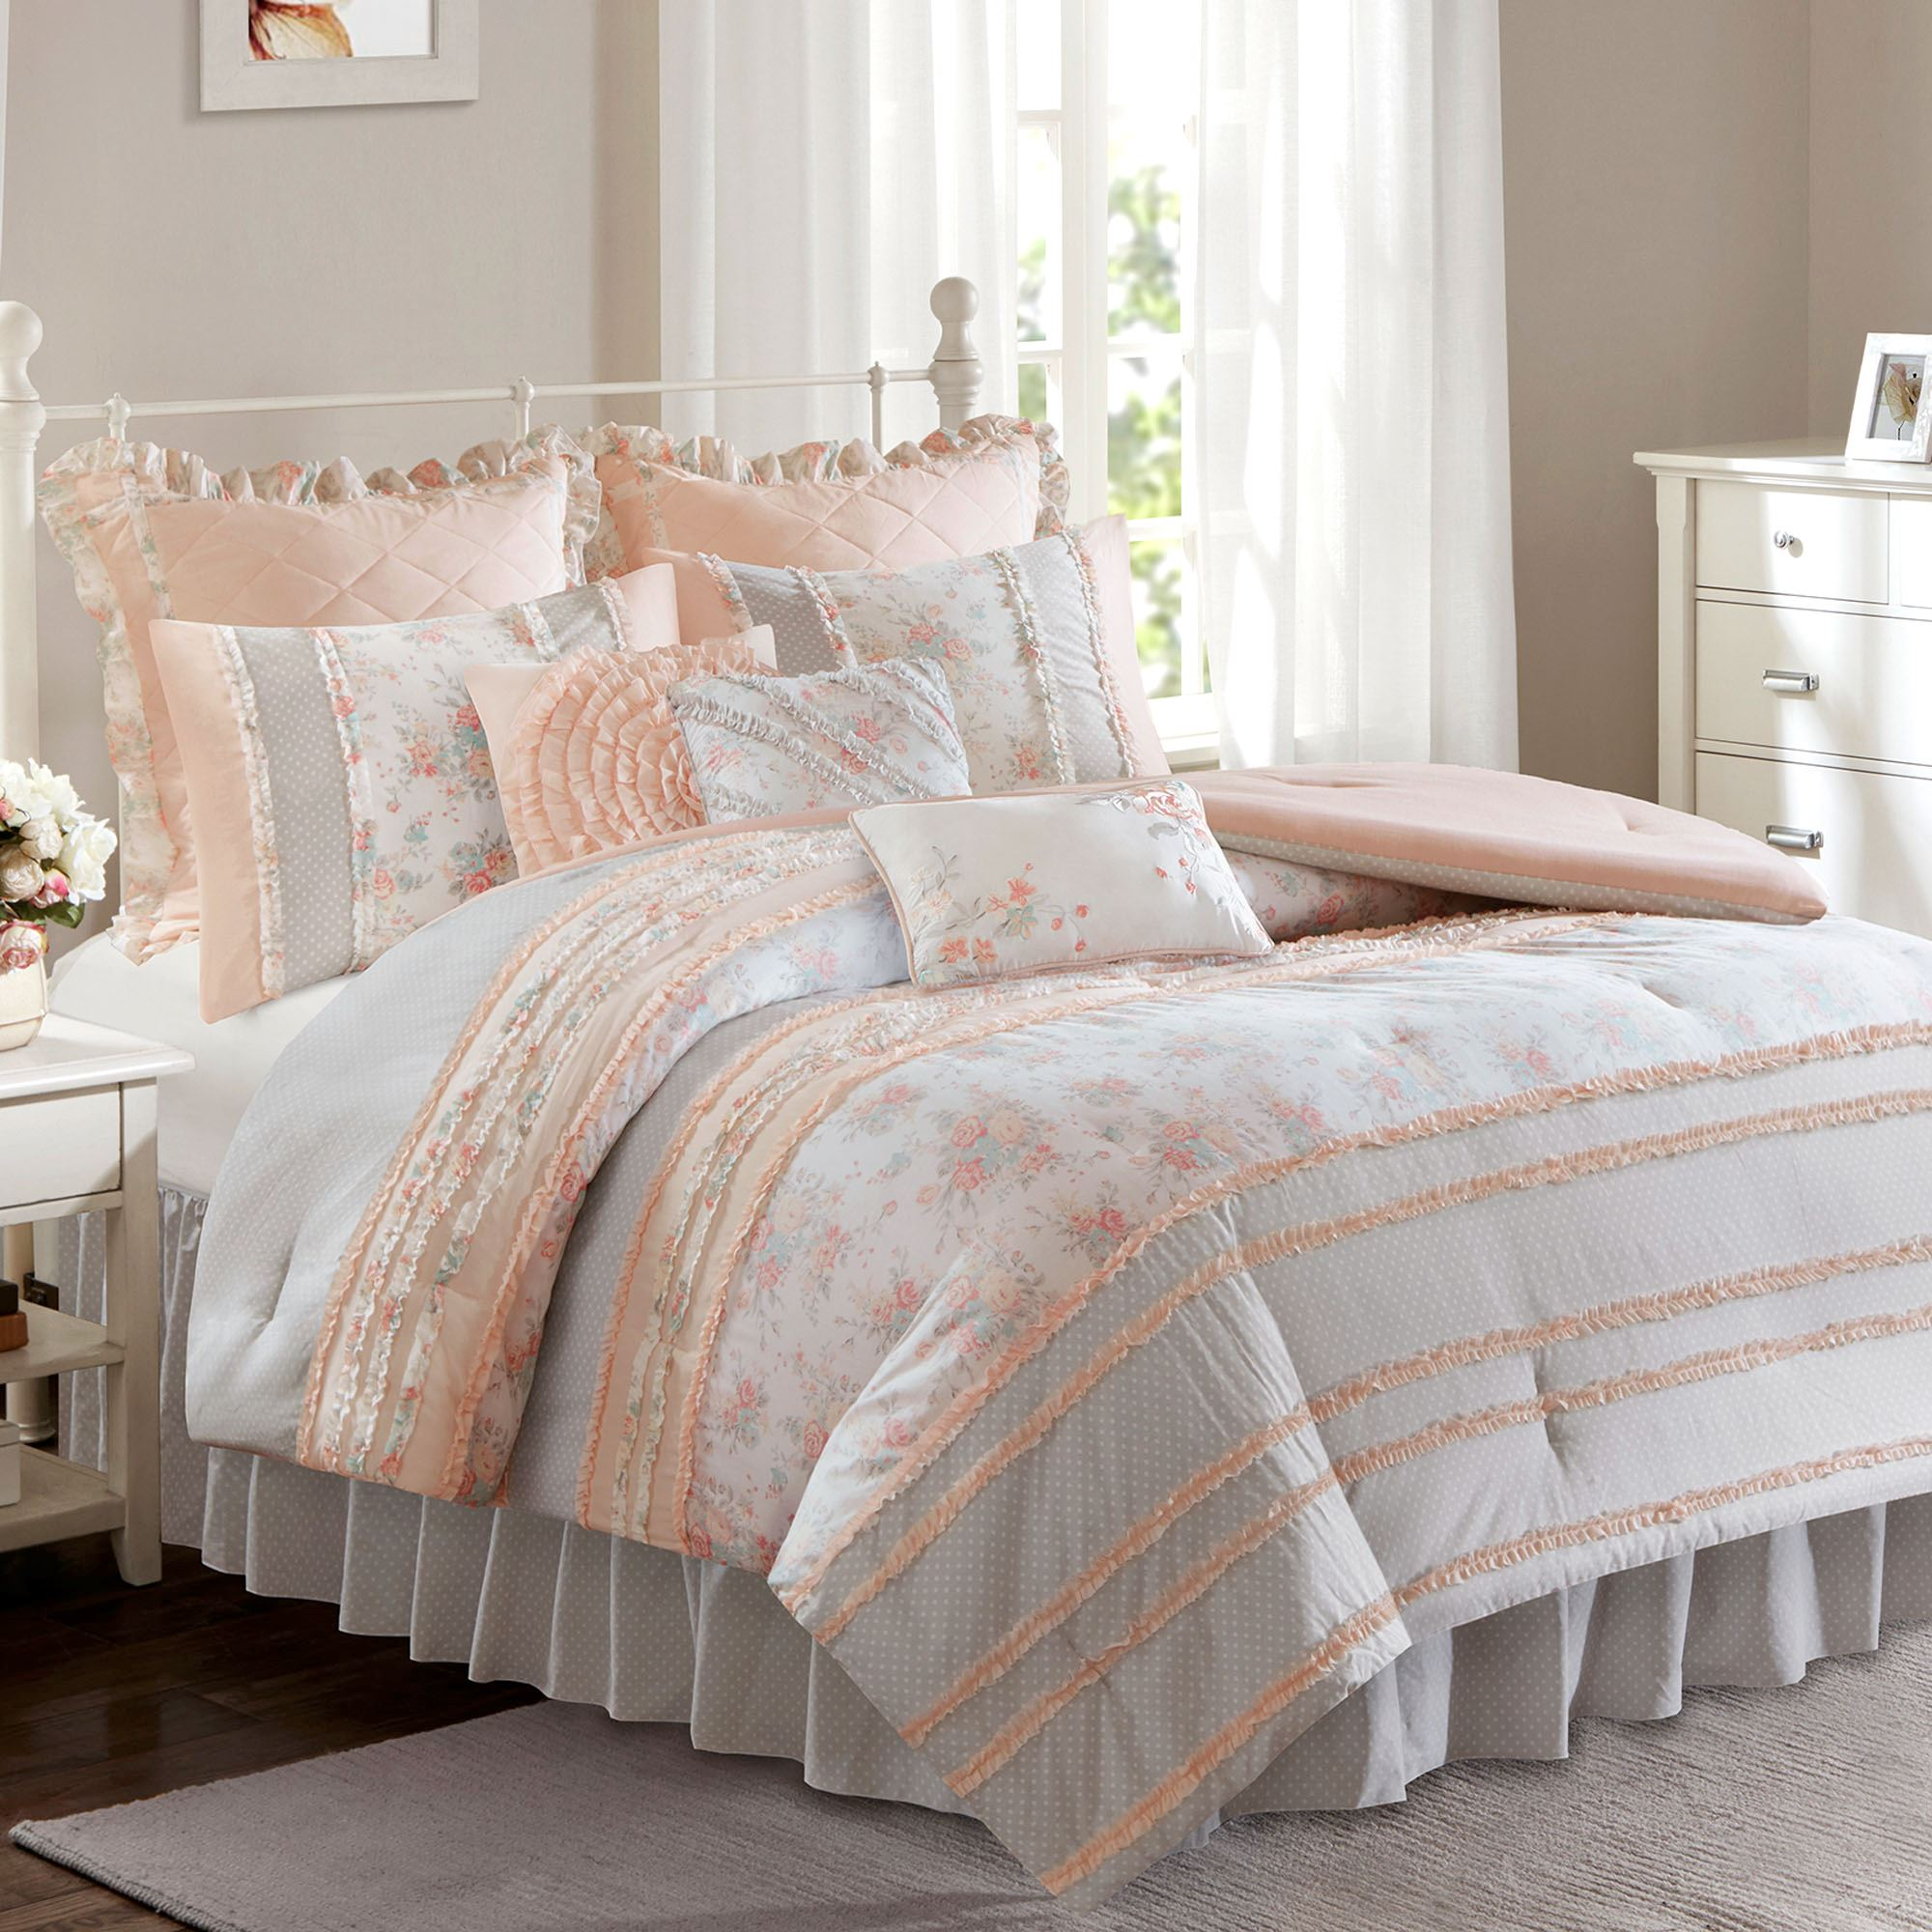 Serena Peach Ruffle 7 9 Pc Comforter Bed Set